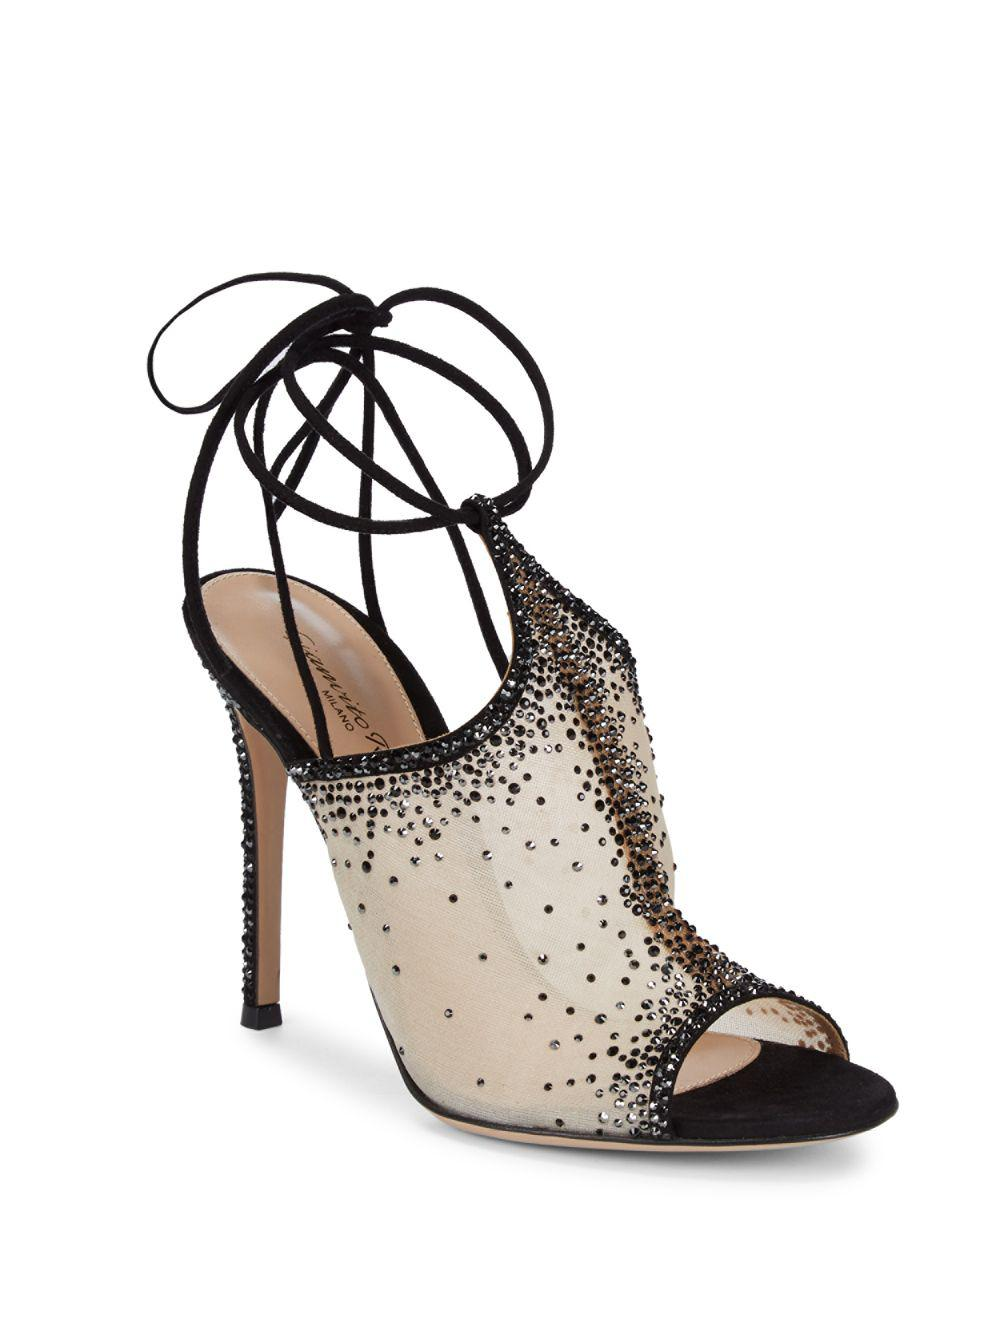 73afe01e1a10 Lyst - Gianvito Rossi Sequin Ankle Strap Sandals - Save 41%